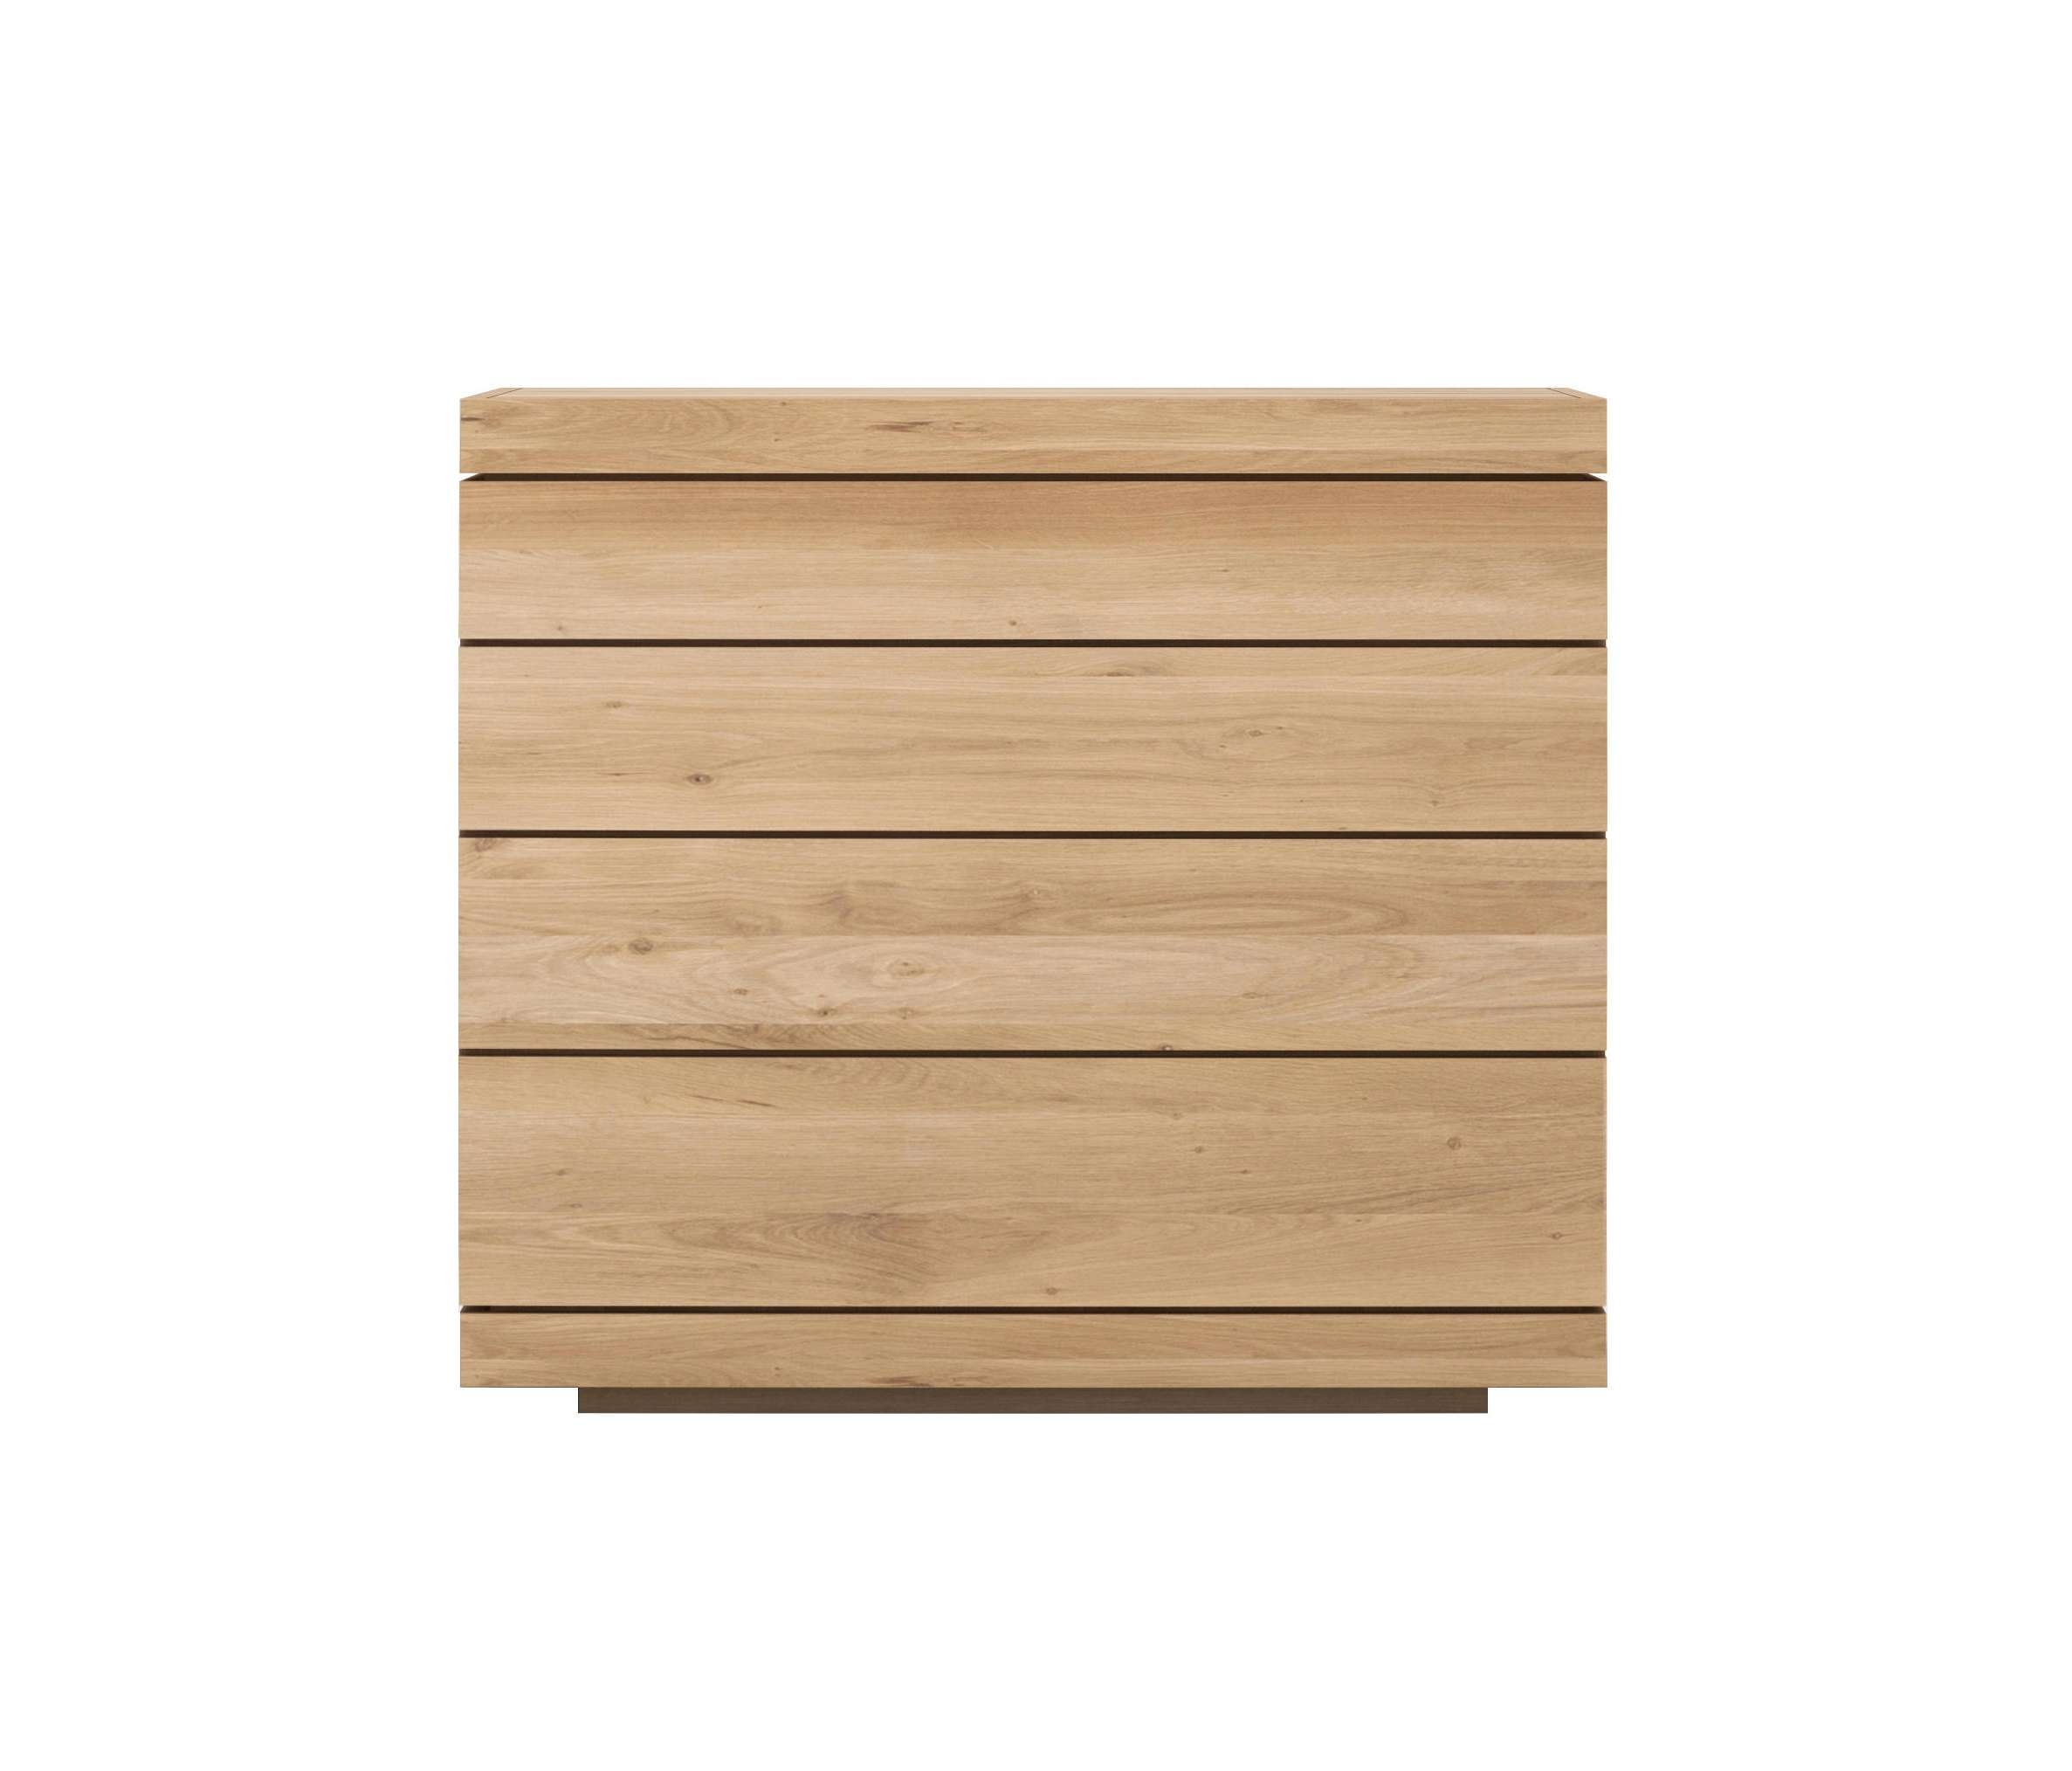 Oak Burger Chest Of Drawers – Sideboards From Ethnicraft | Architonic In Sideboards With Drawers (View 15 of 20)